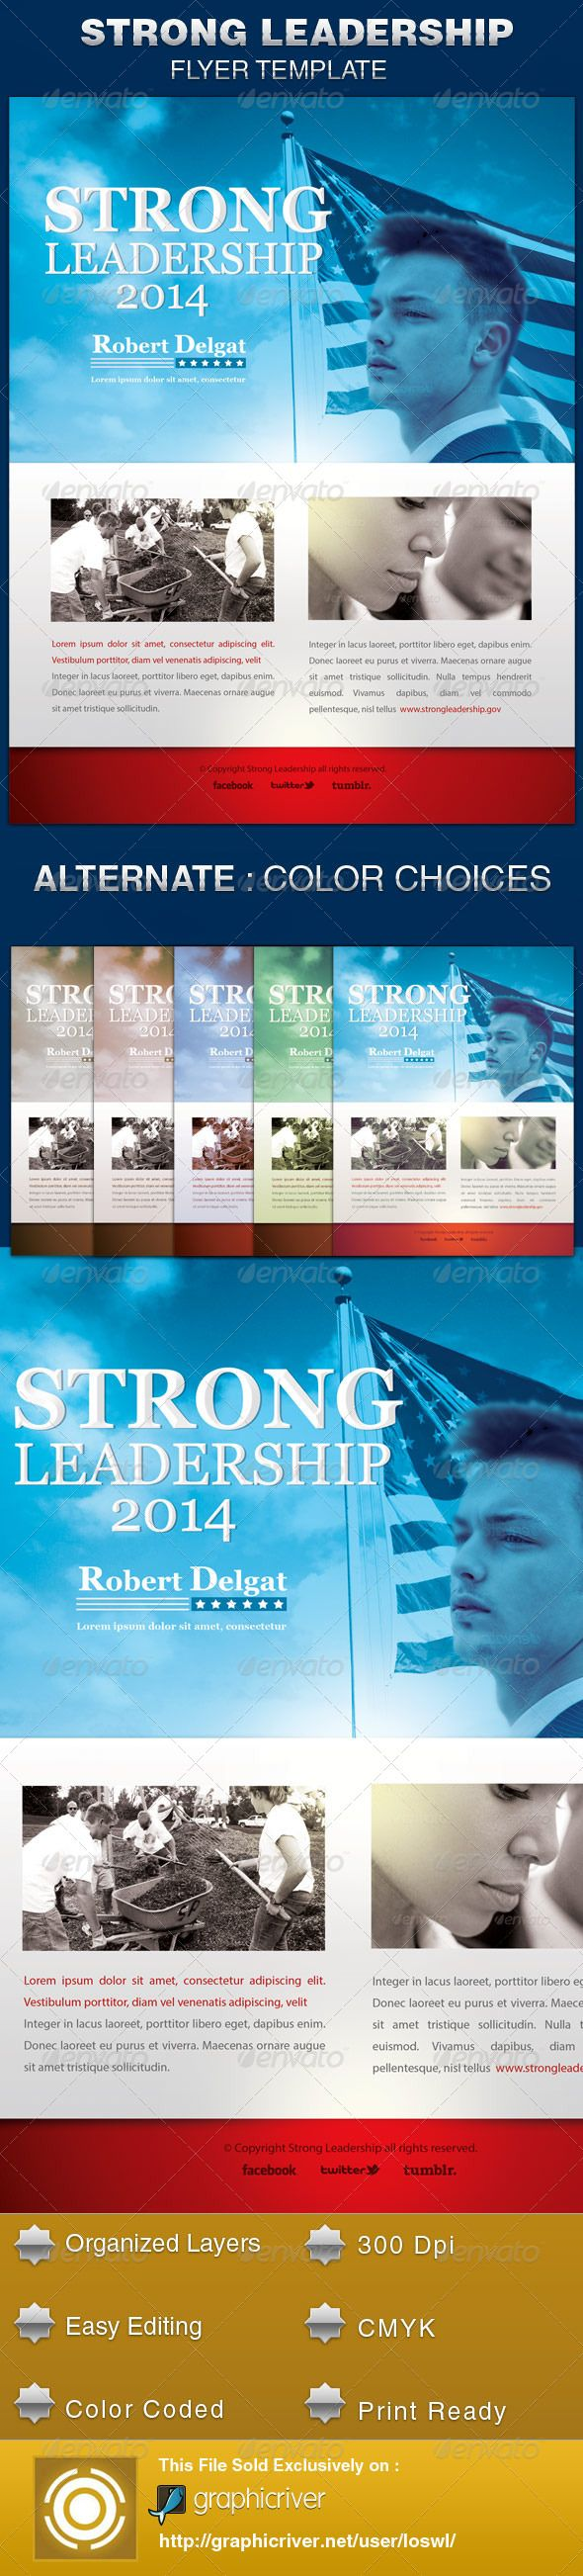 Strong Leadership Political Flyer Template  Flyer Outline